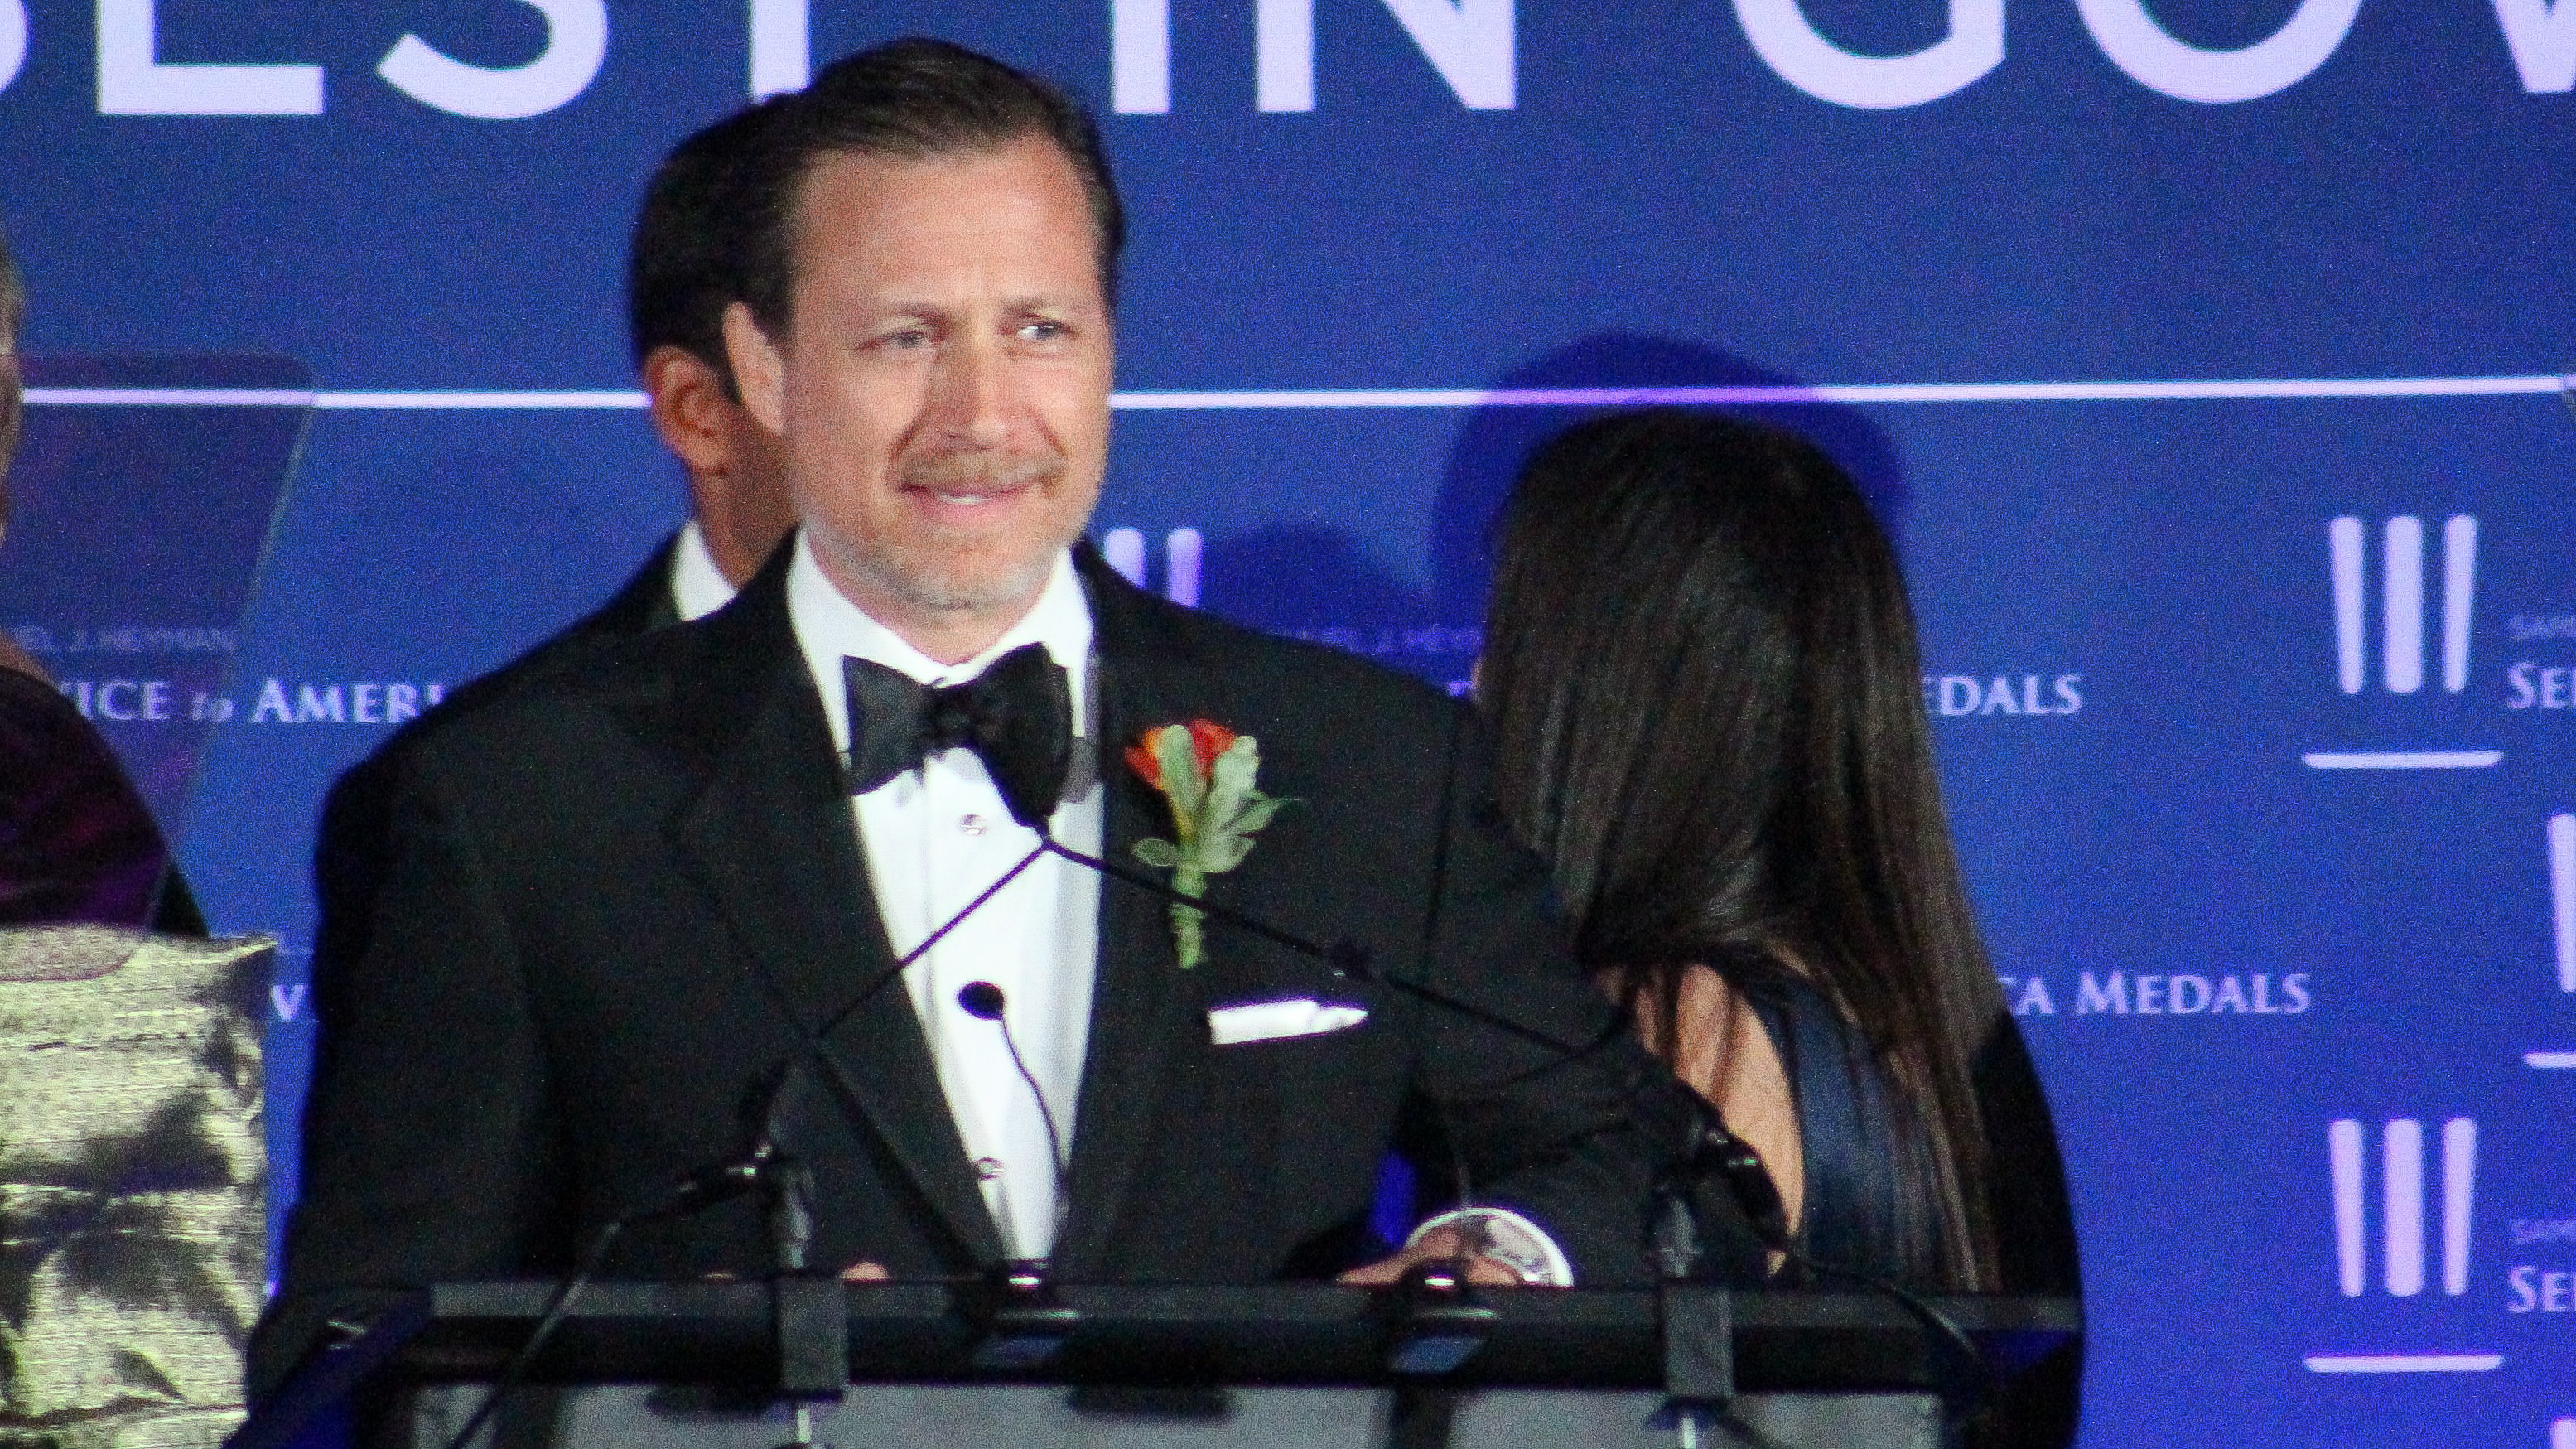 Andrew Herscowitz, coordinator for Power Africa at the U.S. Agency for International Development, accepts the National Security and International Affairs Medal at the 2018 Sammies Gala. (Jessie Bur/Staff)